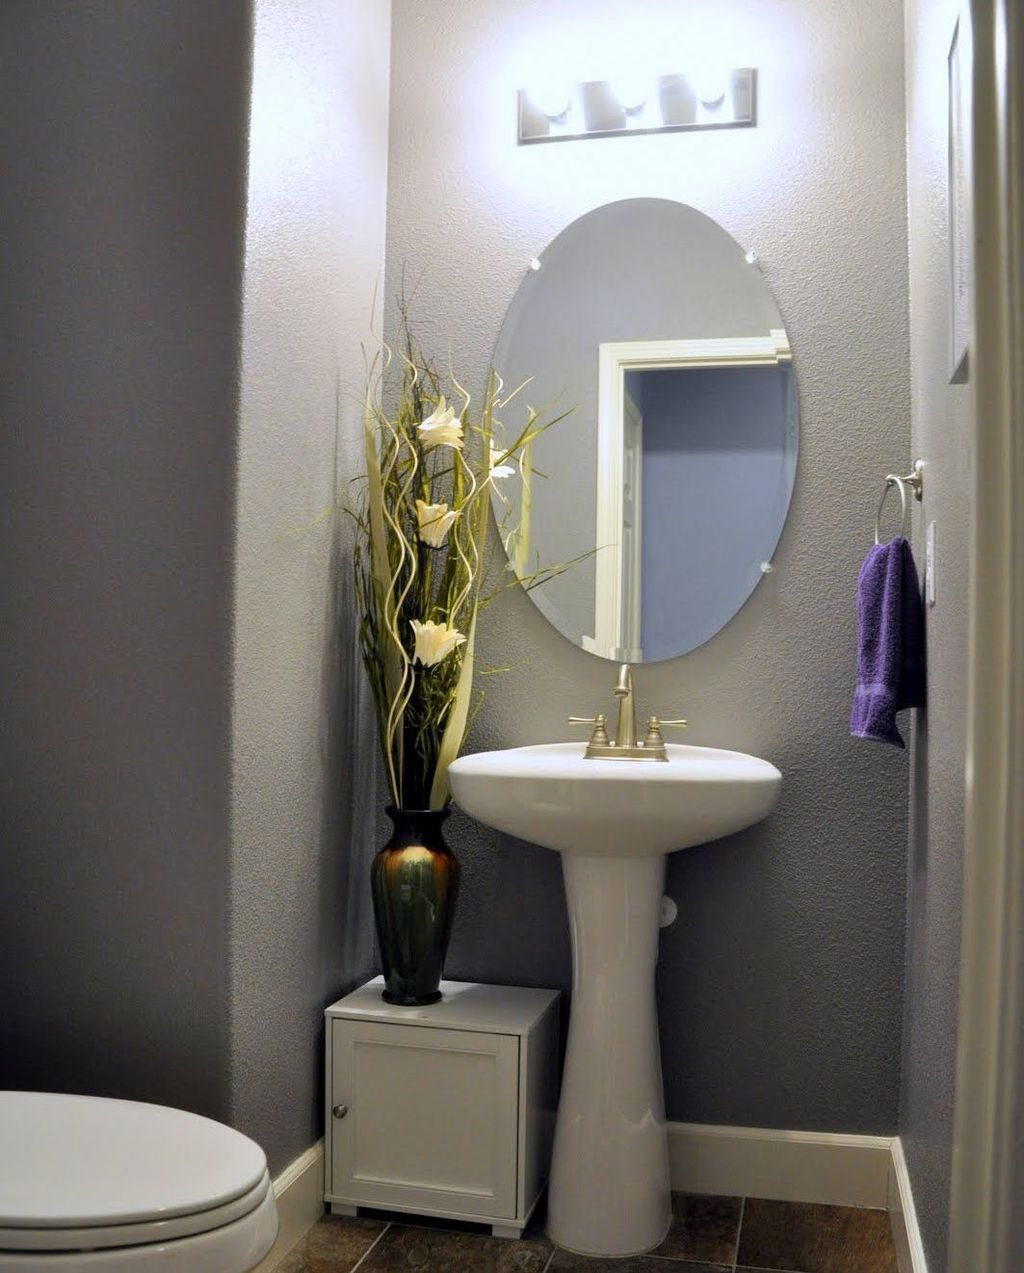 47 Affordable Small Powder Room Decor And Design Ideas In 2020